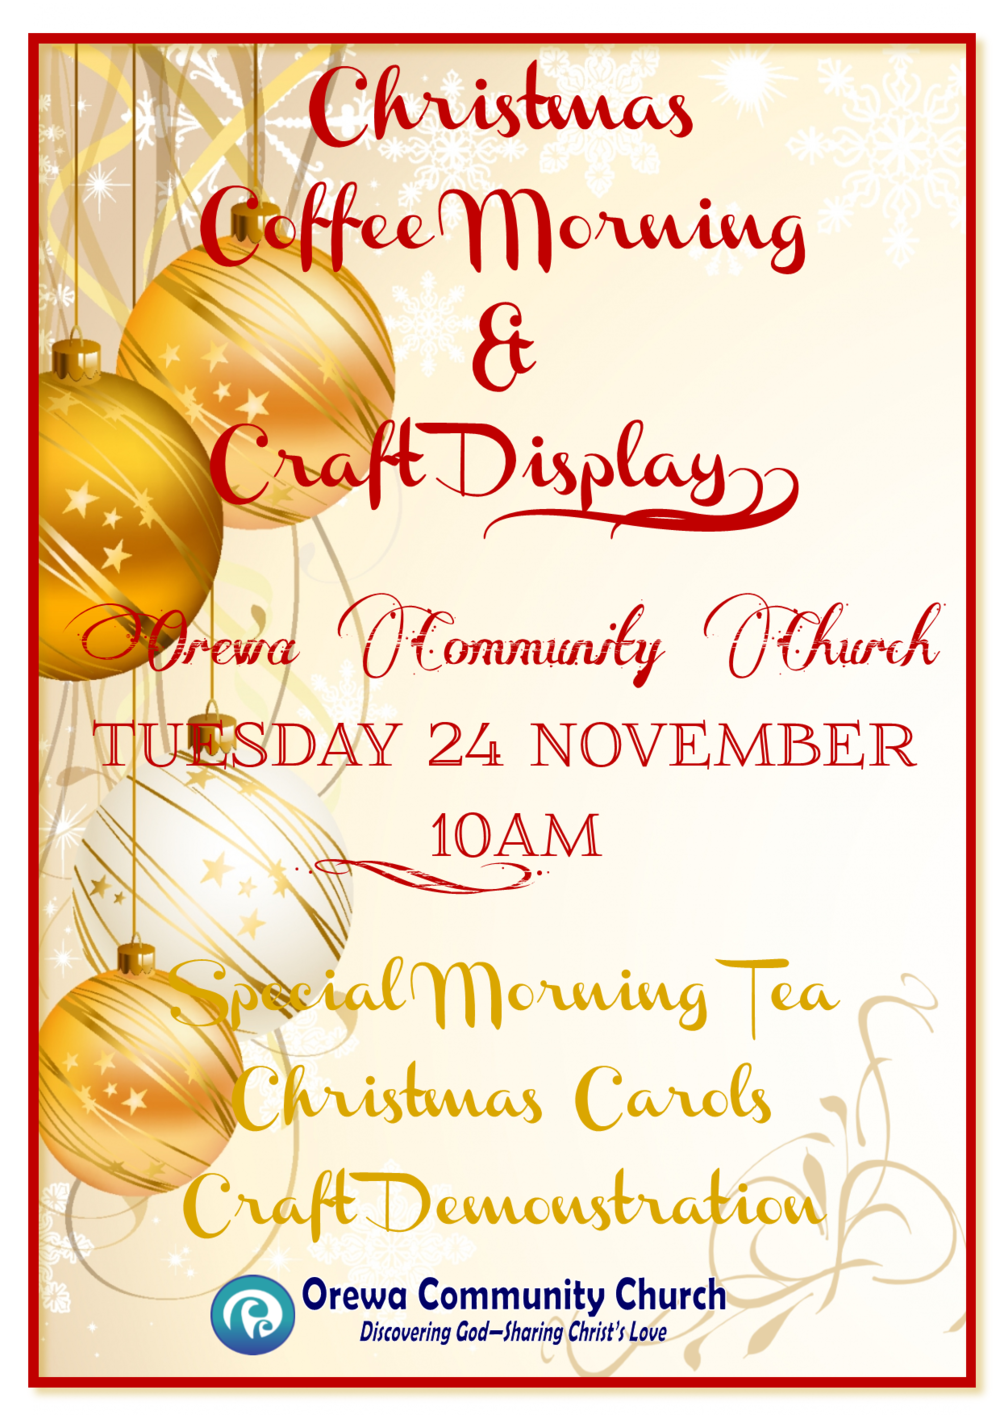 Christmas coffee morning 2015.png